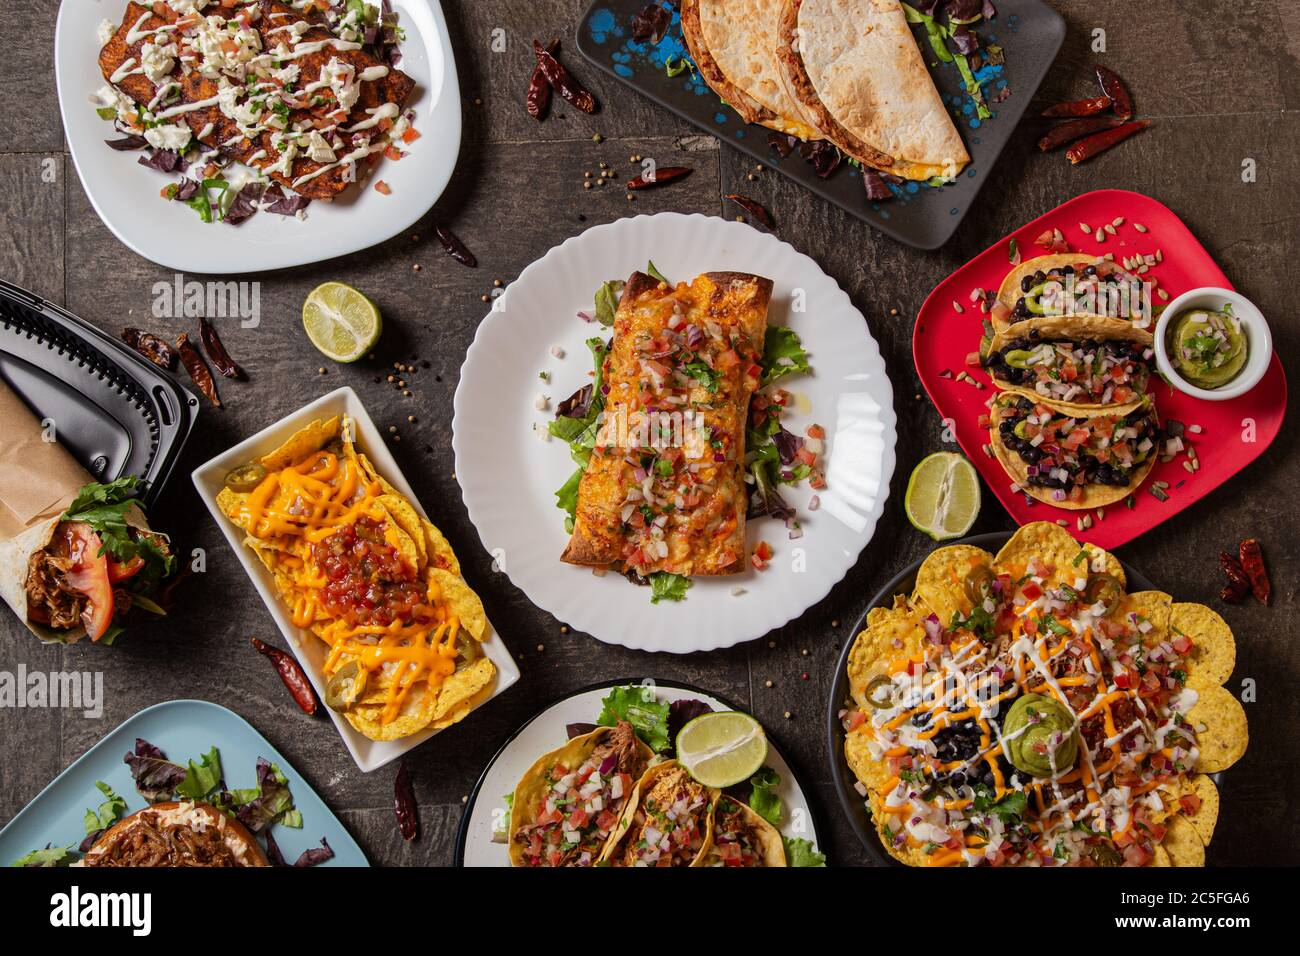 Variety of colorful dishes from typical Mexican cuisine. Top view Stock Photo